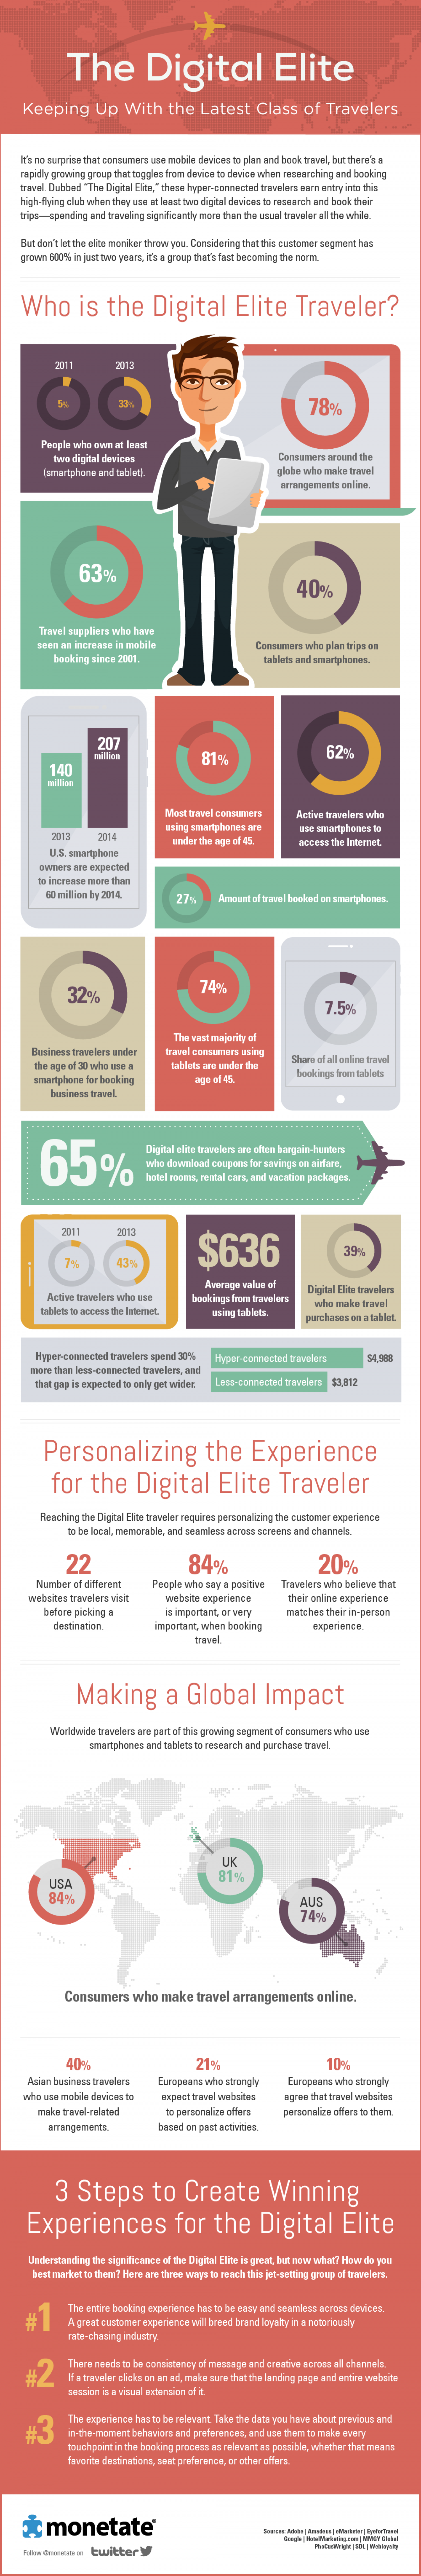 The Digital Elite: Keeping Up With the Latest Class of Travelers Infographic